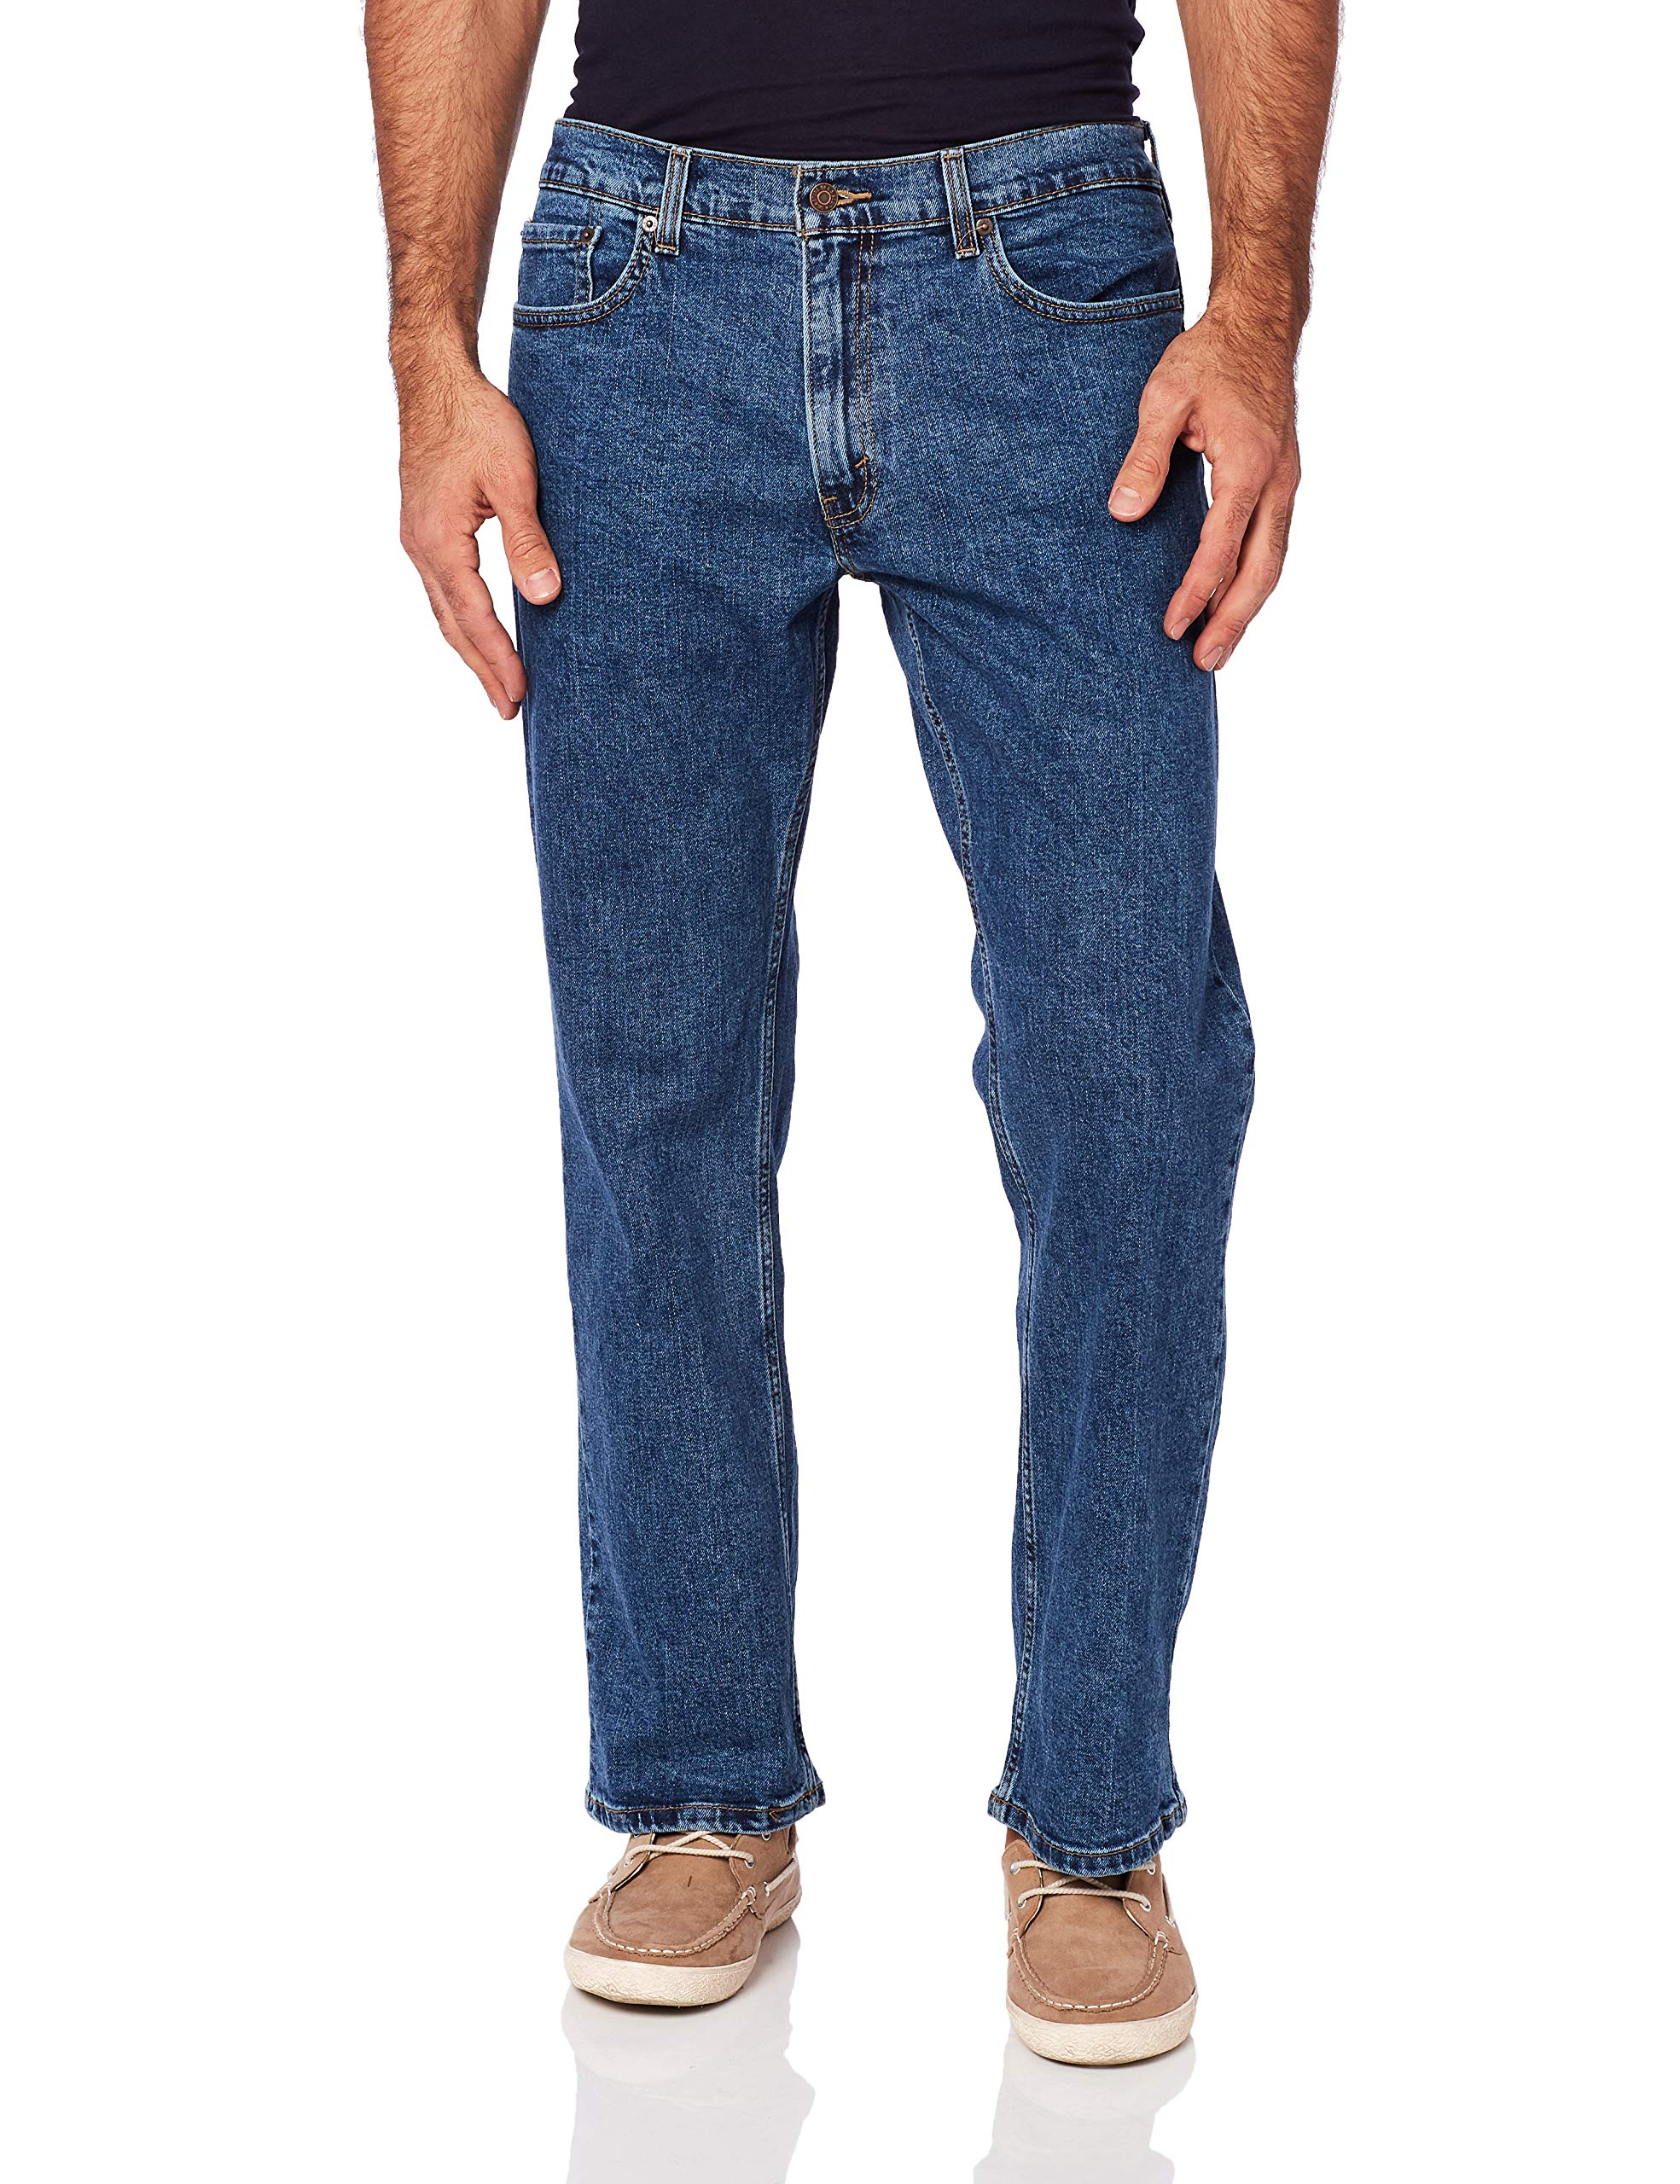 Signature by Levi Strauss & Co Men's Relaxed Jean, Medium Indigo, 36x32 by Signature by Levi Strauss & Co. Gold Label